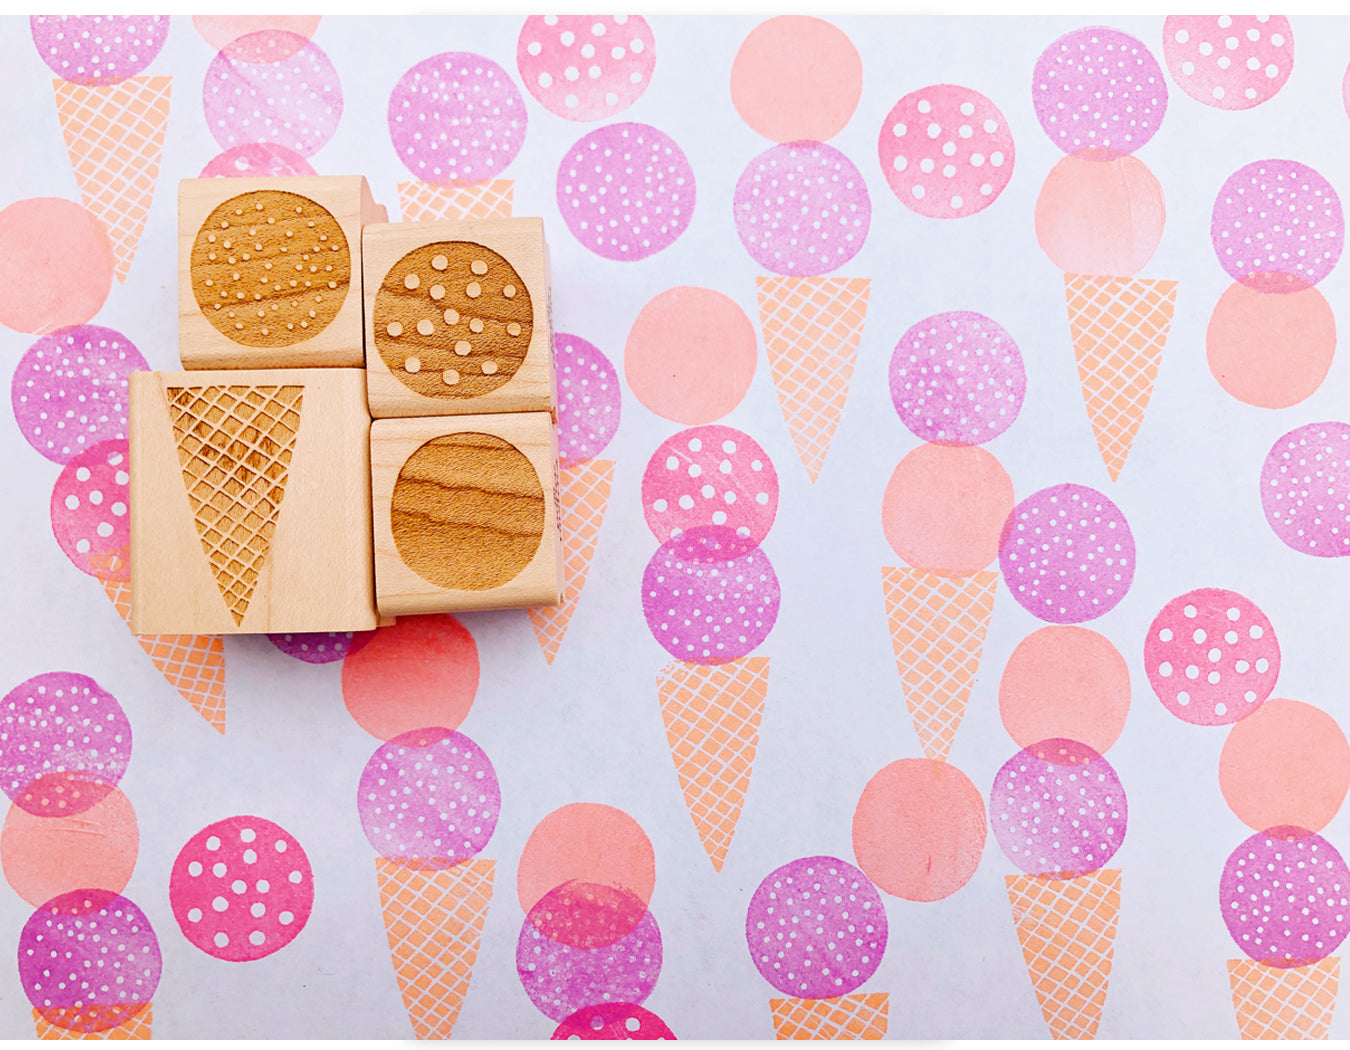 ice cream cone rubber stamp set contains 3 ice cream scoop stamps + 1 ice cream cone stamp.